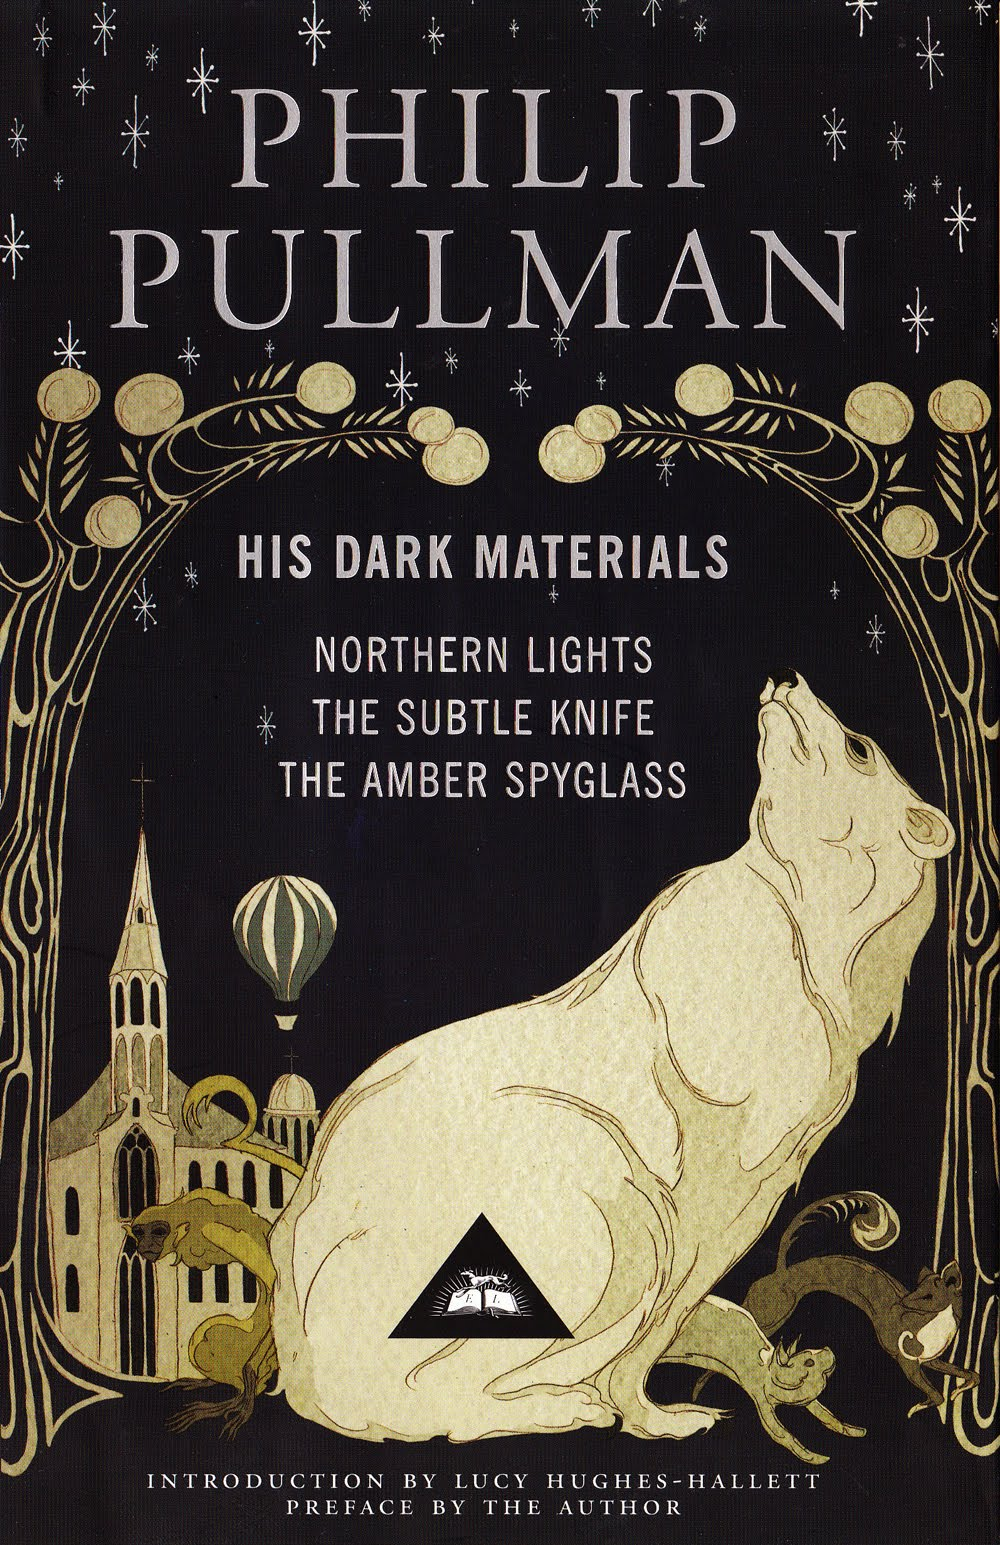 young adult novel Philip Pullman His Dark Materials